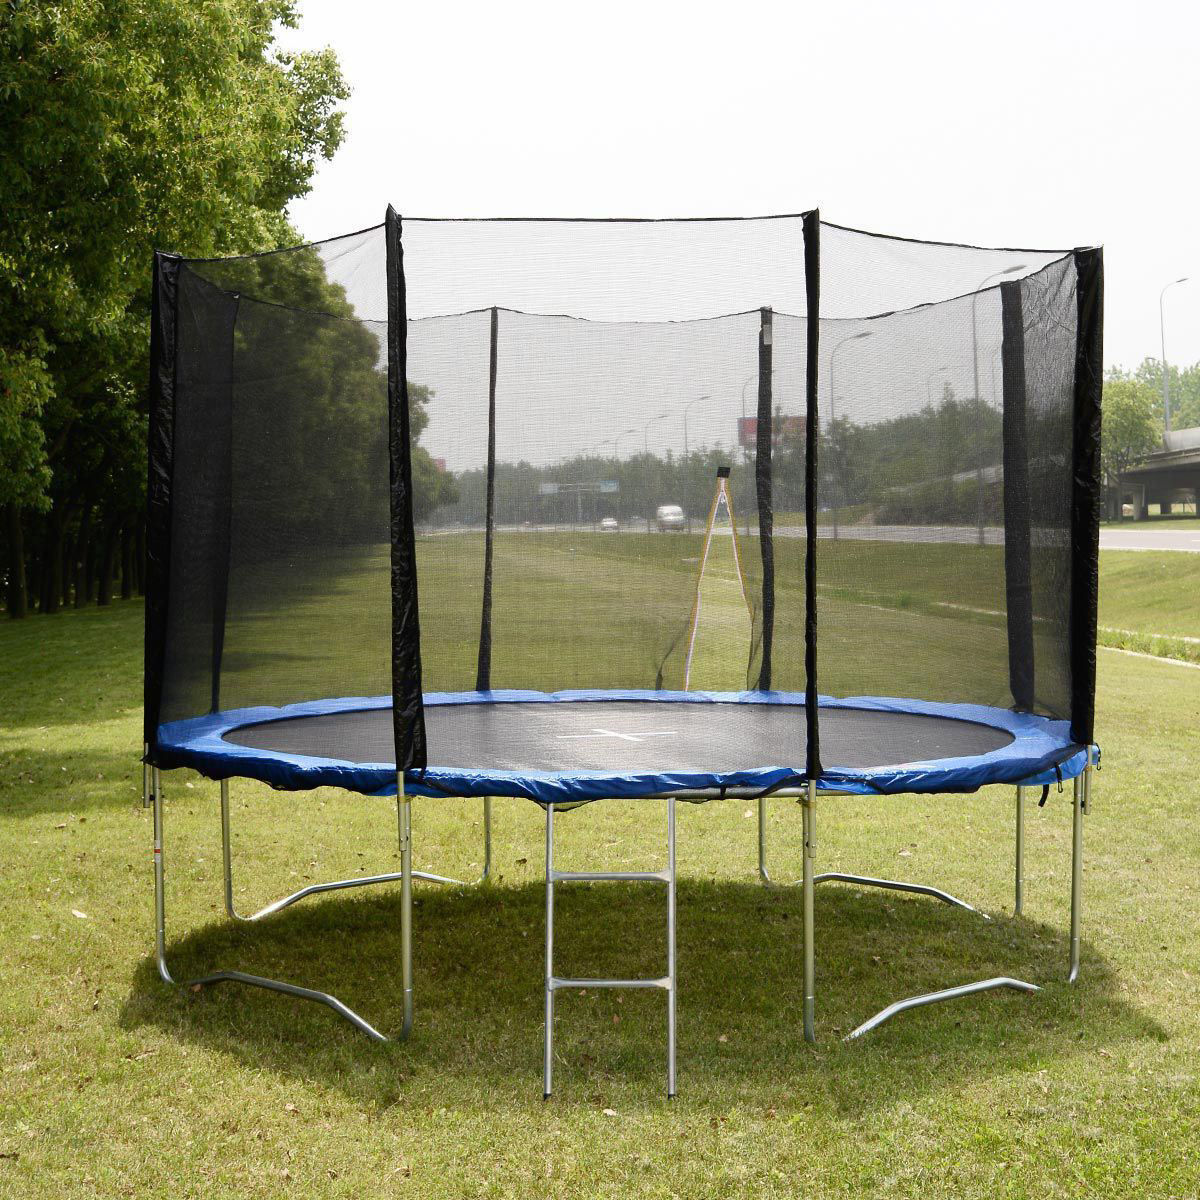 Picture of Outdoor 12' Round Trampoline Bounce Net with Sprint Pad